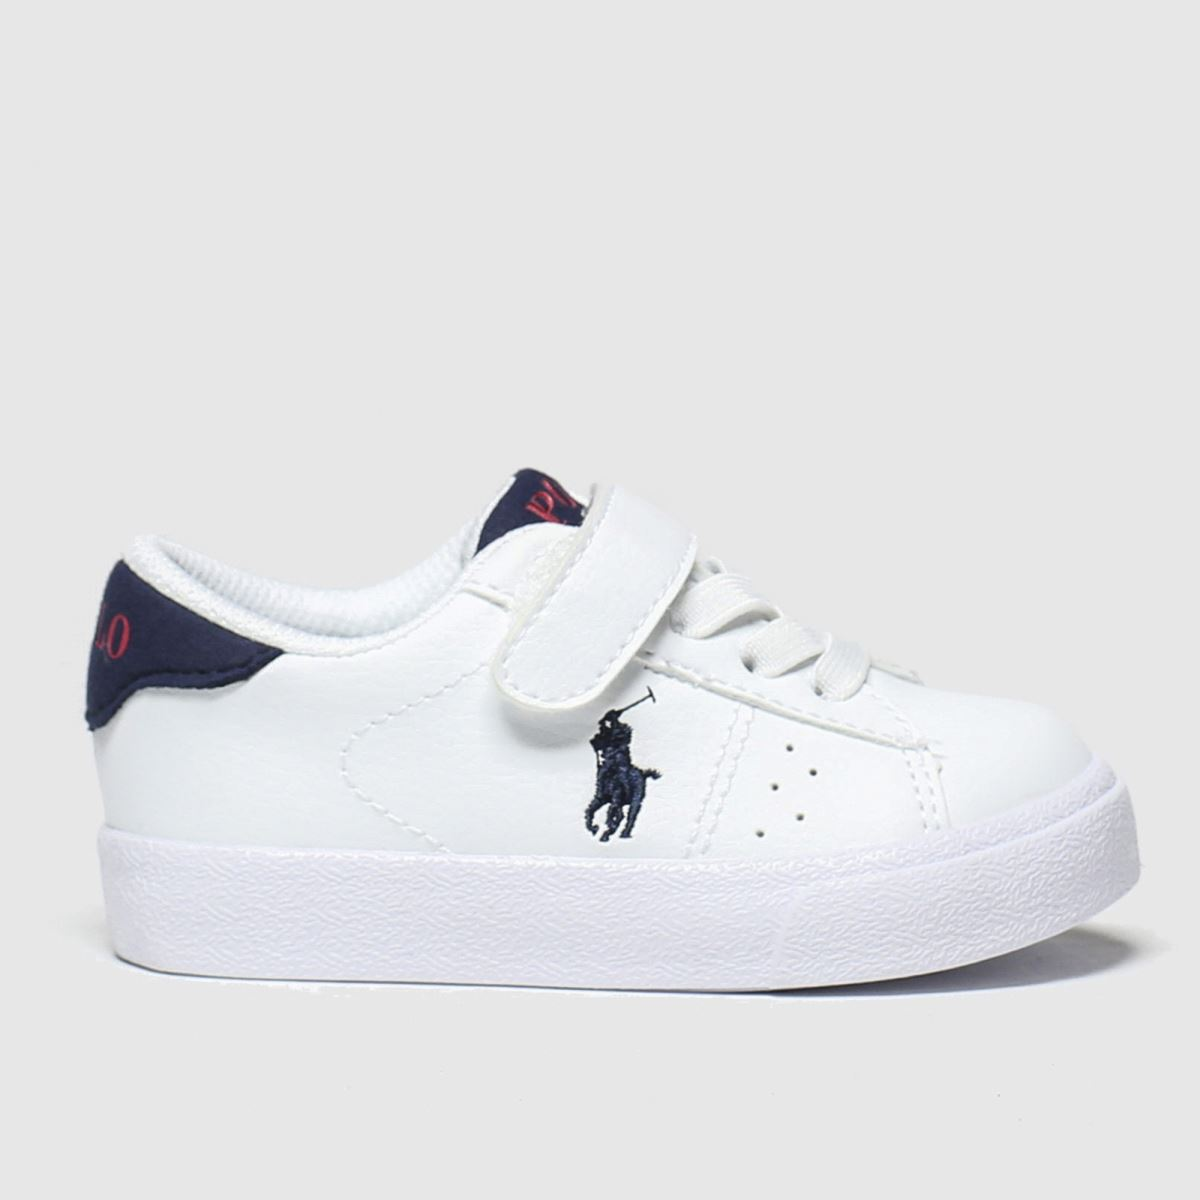 Polo Ralph Lauren White & Navy Theron Boots Toddler